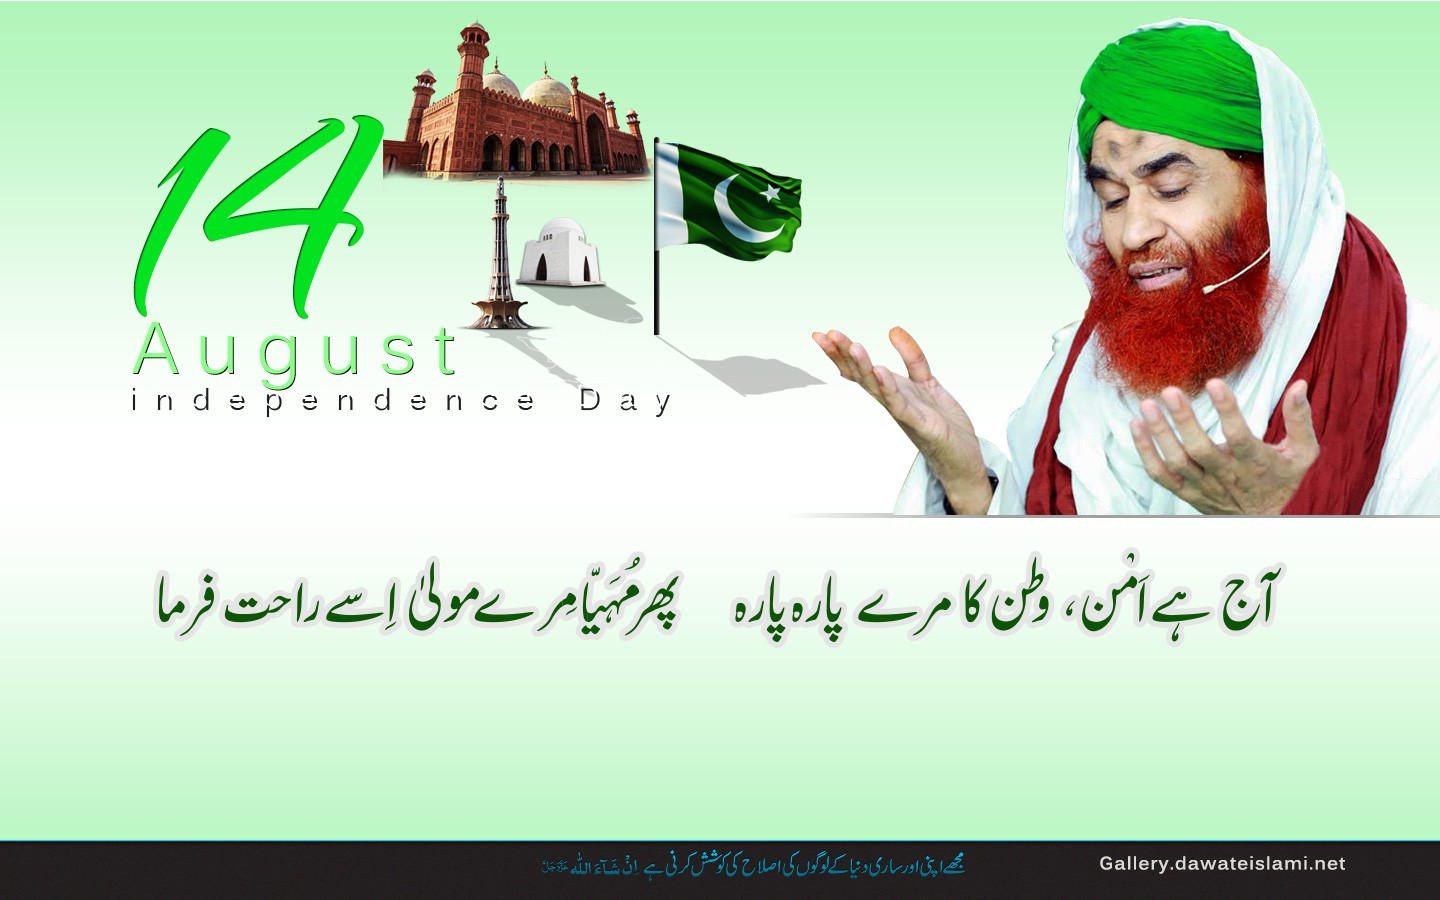 14 august independence day